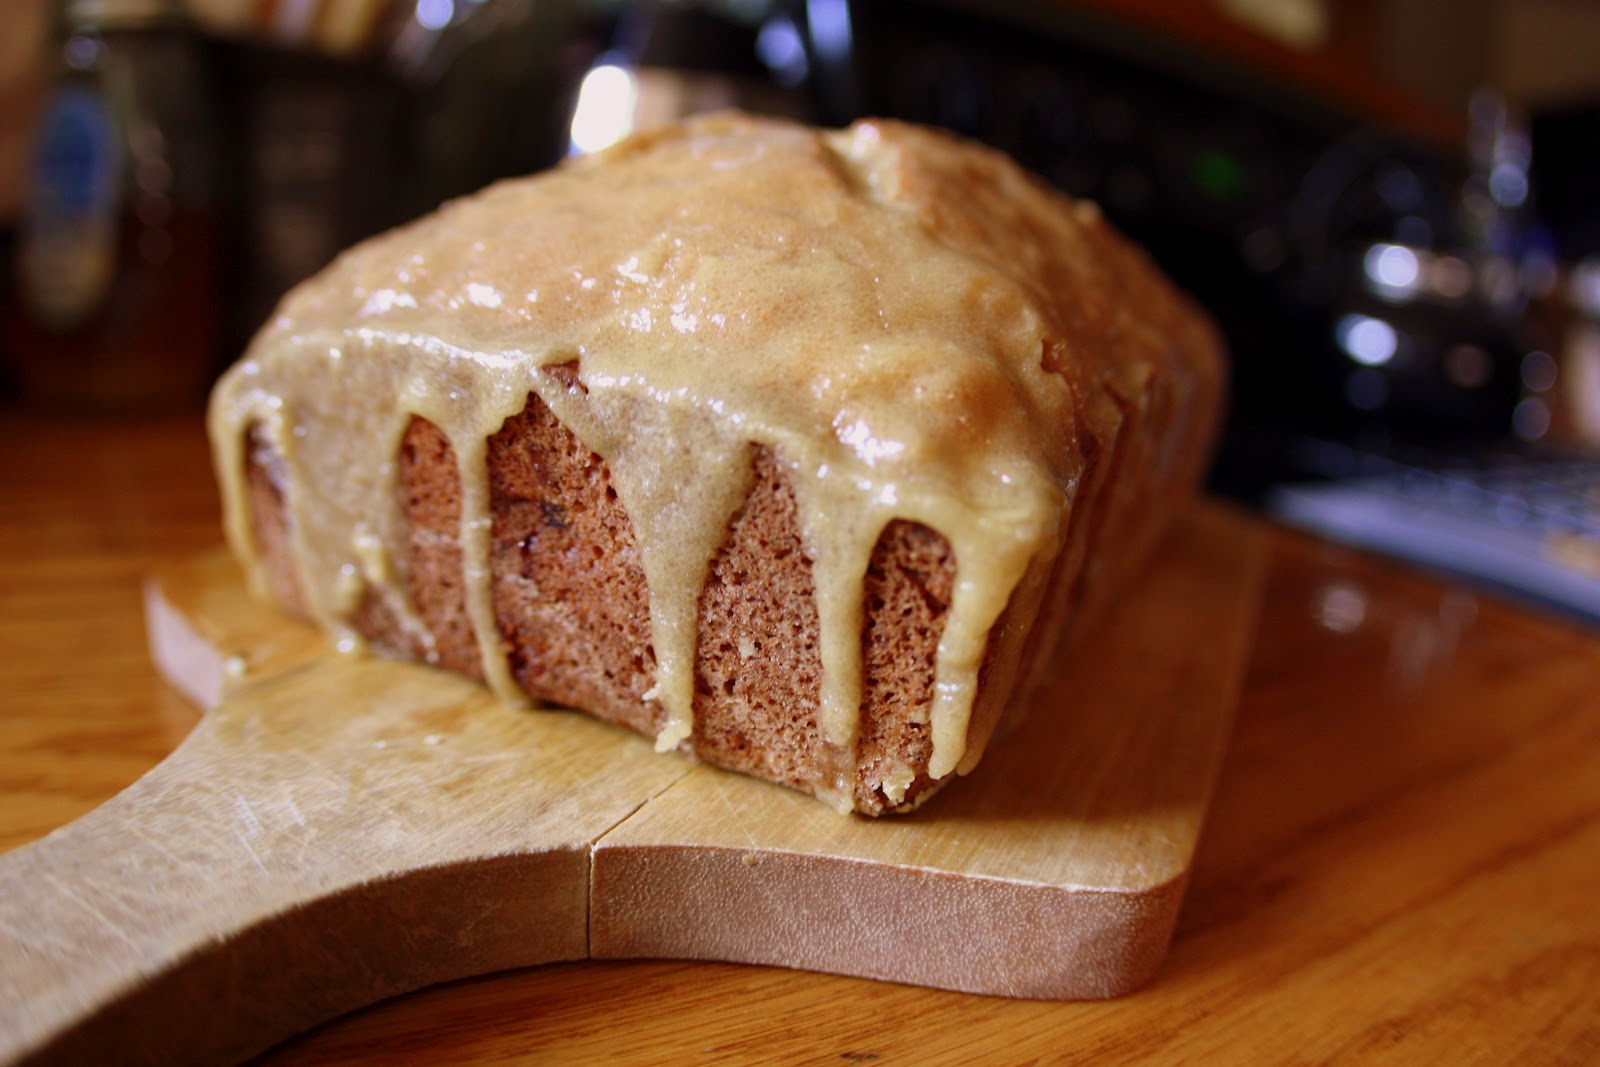 Lemony Olive Oil & Almond Banana Bread